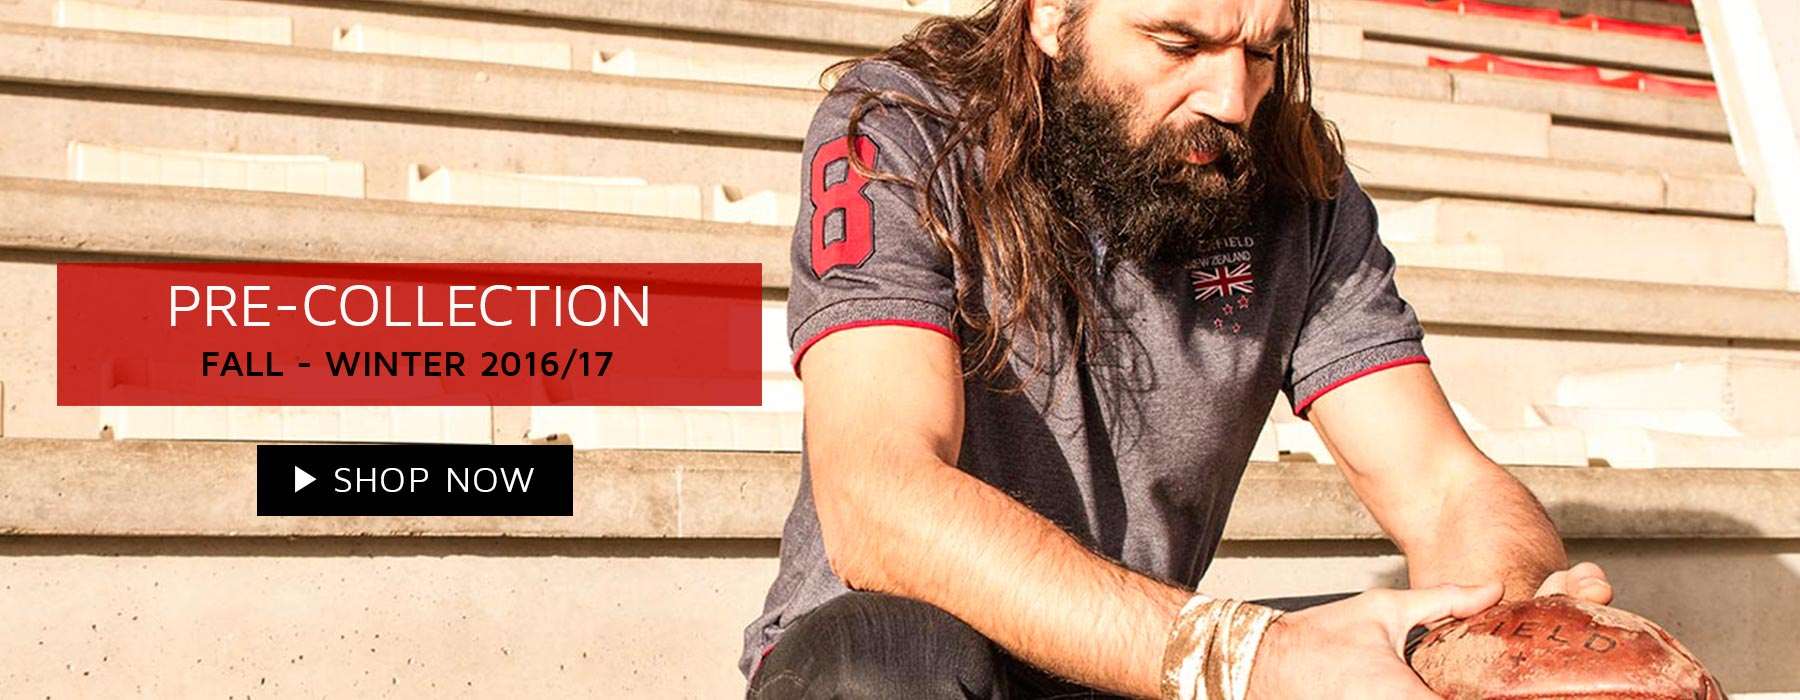 Ruckfiled and Sebastien Chabal New Collection Fall Winter 2016! Rugbywear for men, rugby polo shirt XXL XXXL XXXXL 5XL